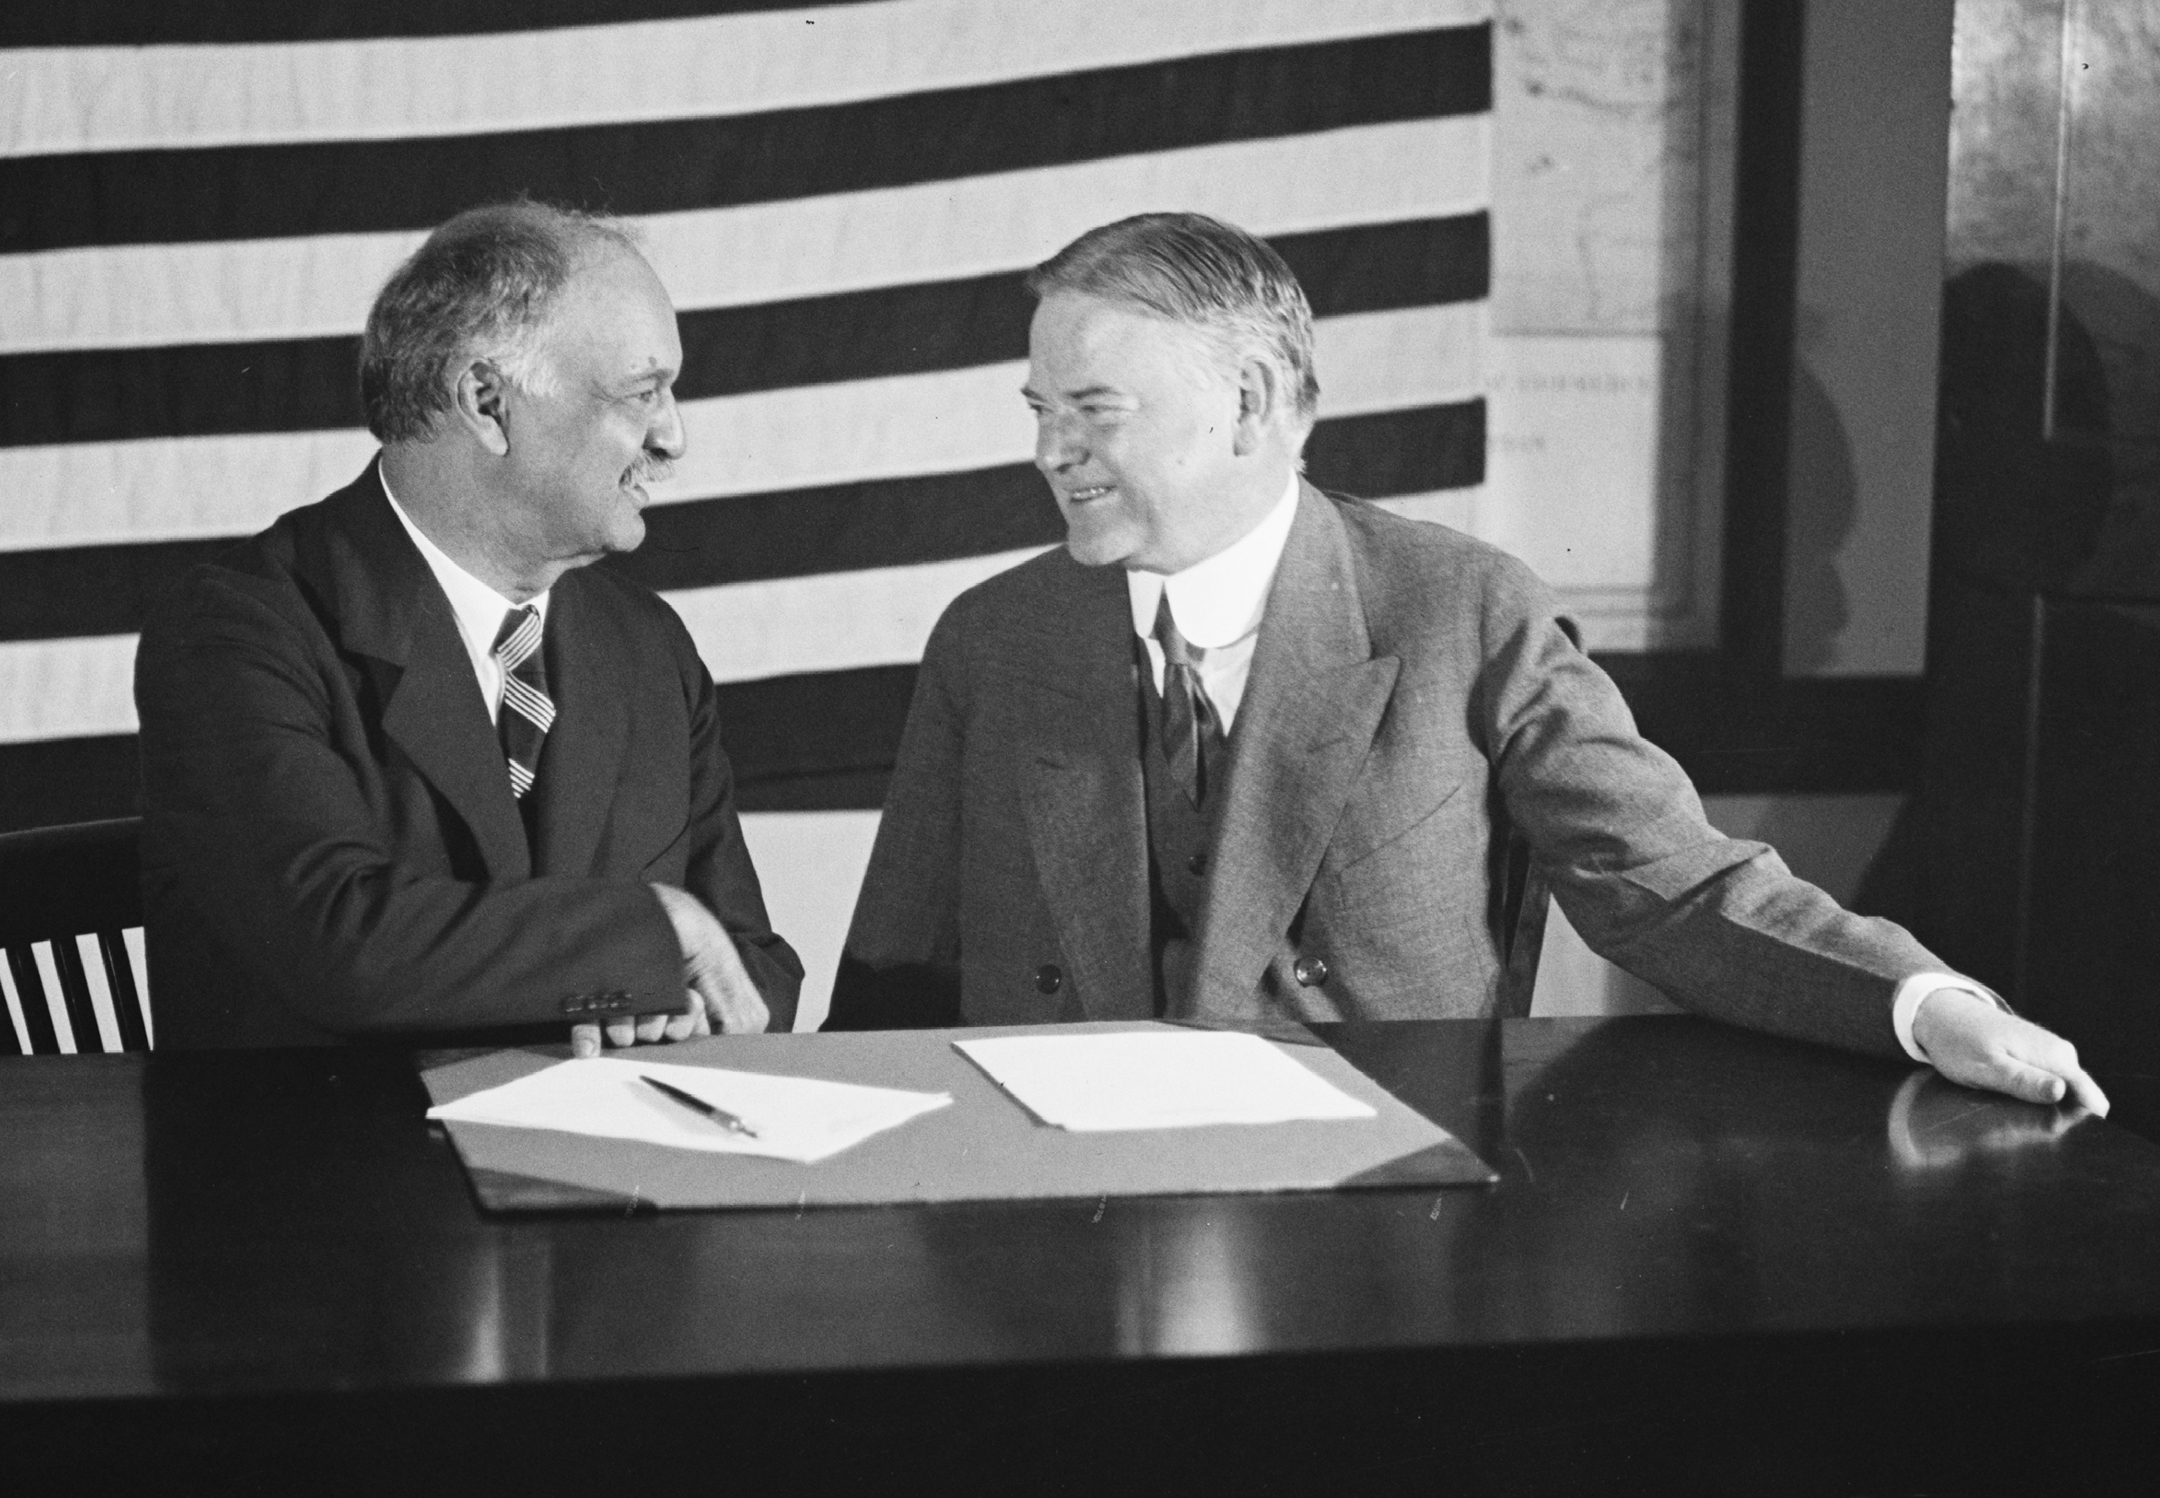 Black and white photo of two men, looking at each other and smiling while sitting at a small desk in front of a large American flag